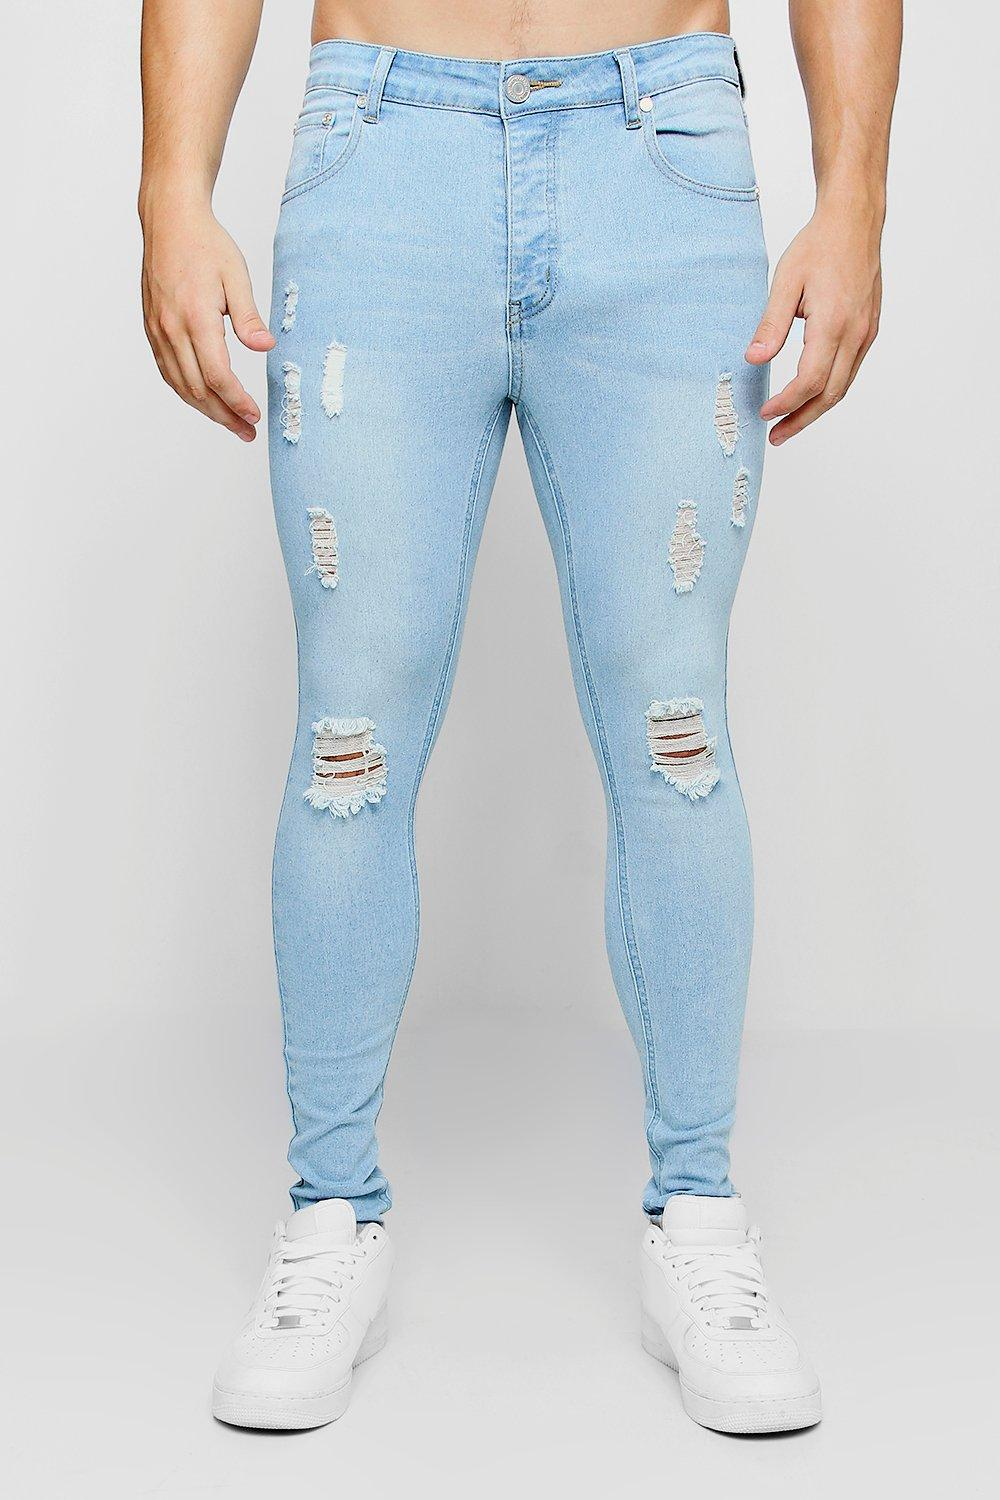 Ripped Knee Spray On Skinny Jeans